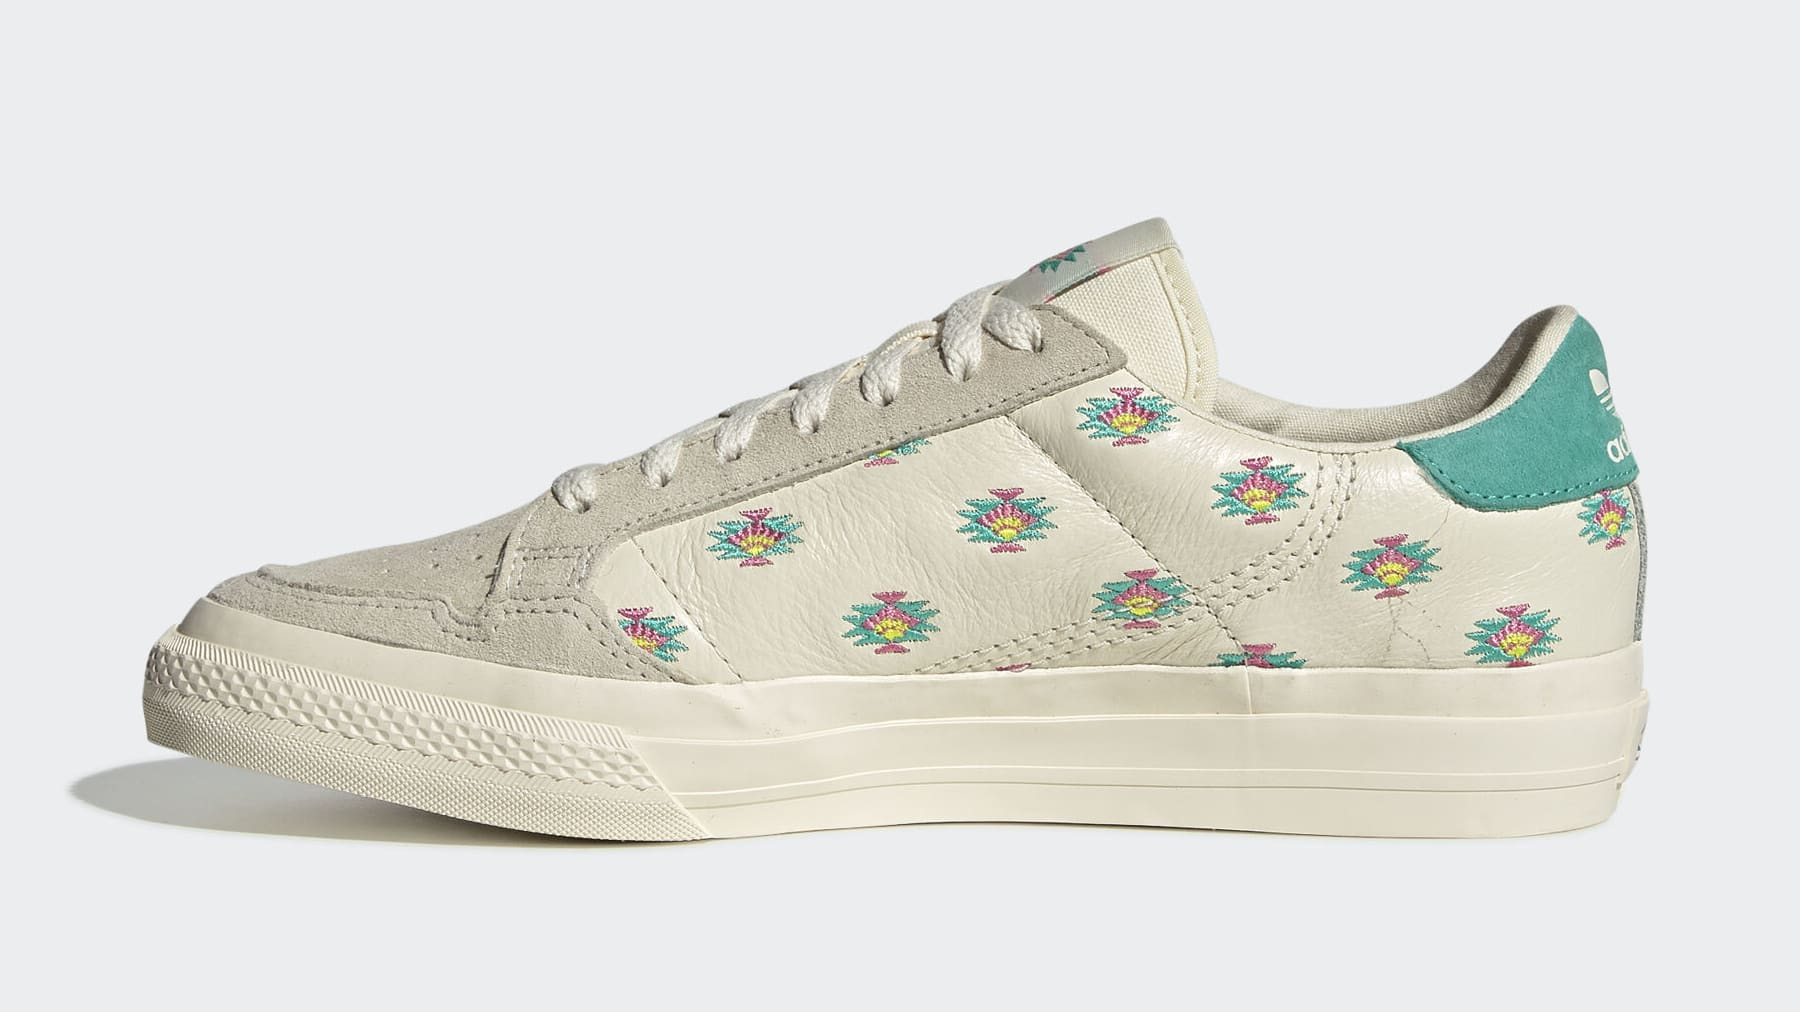 arizona-ice-tea-adidas-continental-80-vulc-fv2714-medial